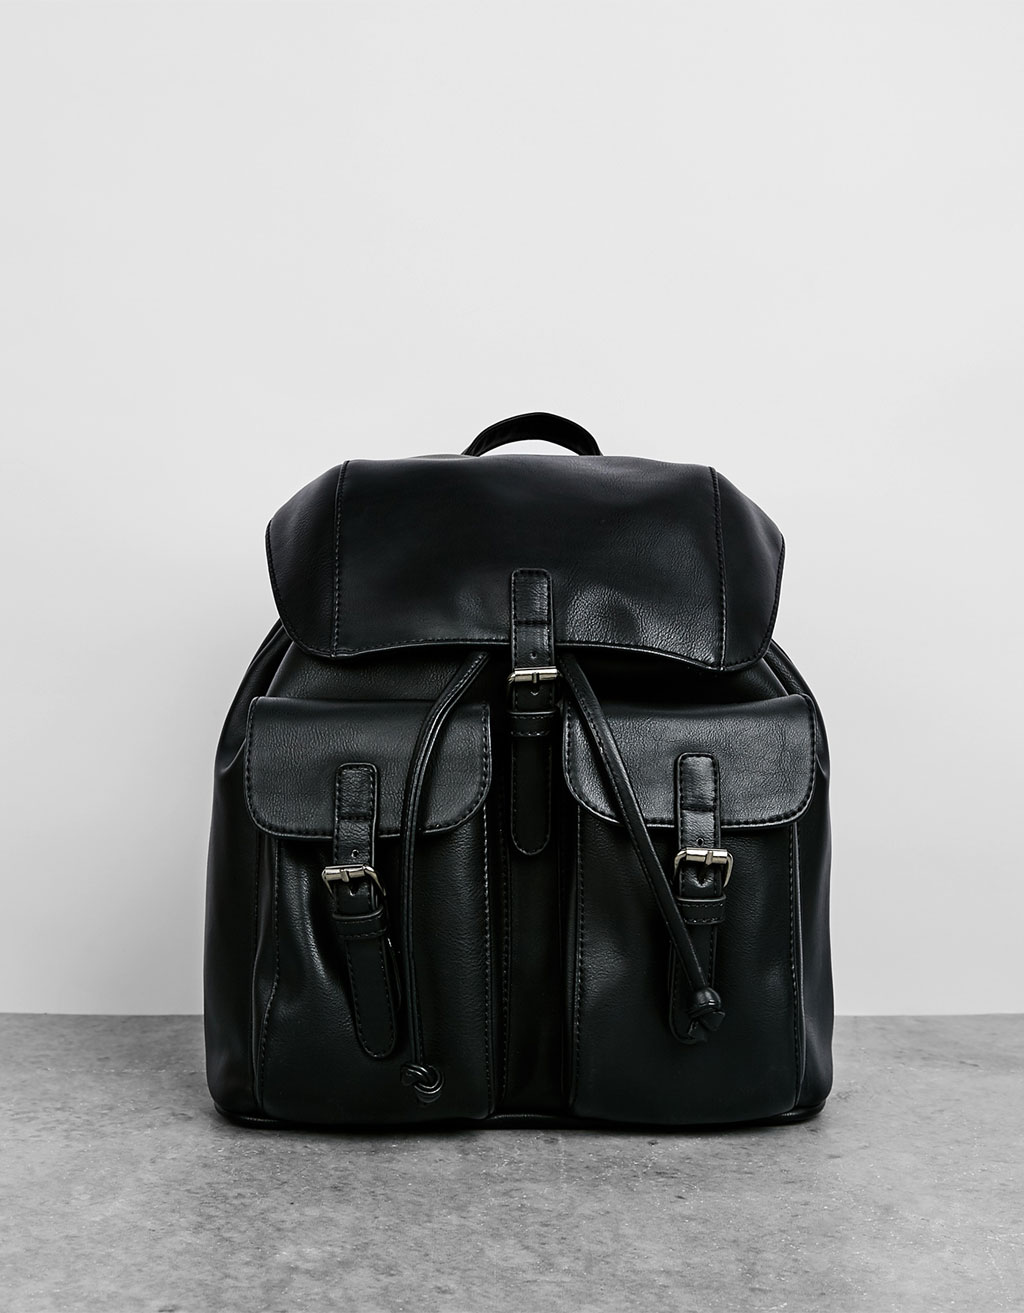 Black imitation leather backpack